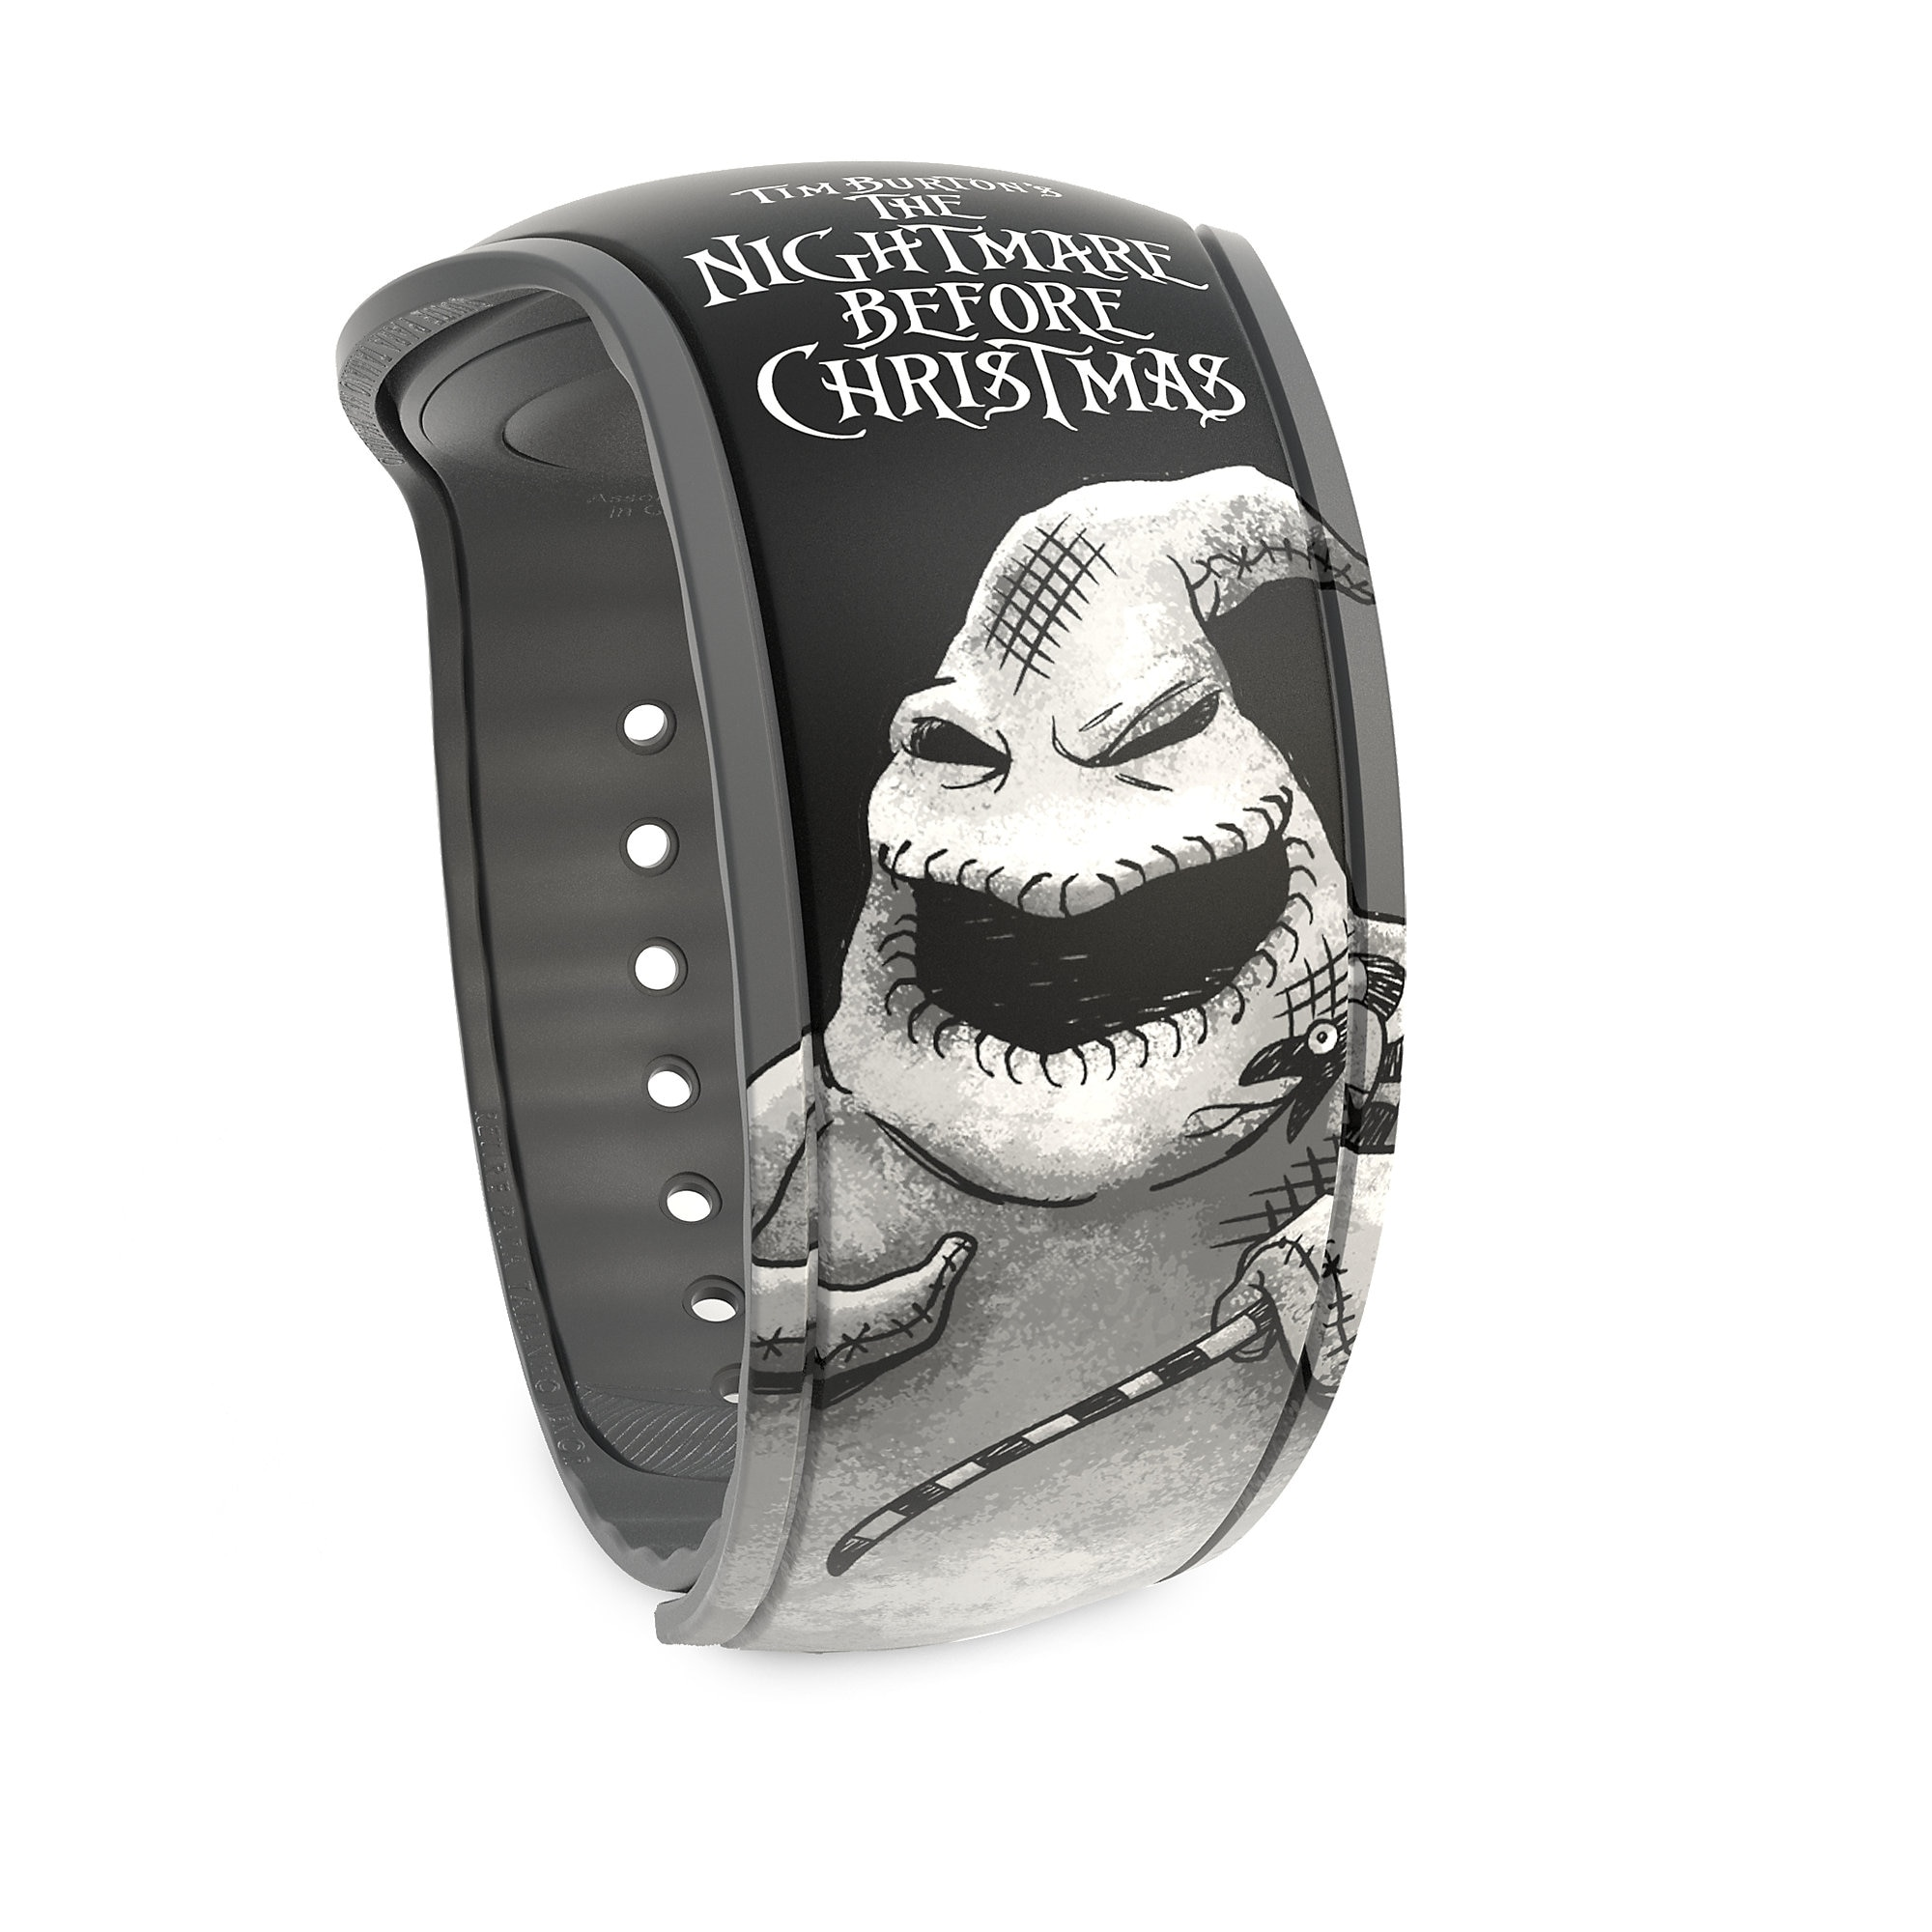 Oogie Boogie with Lock, Shock & Barrel MagicBand 2